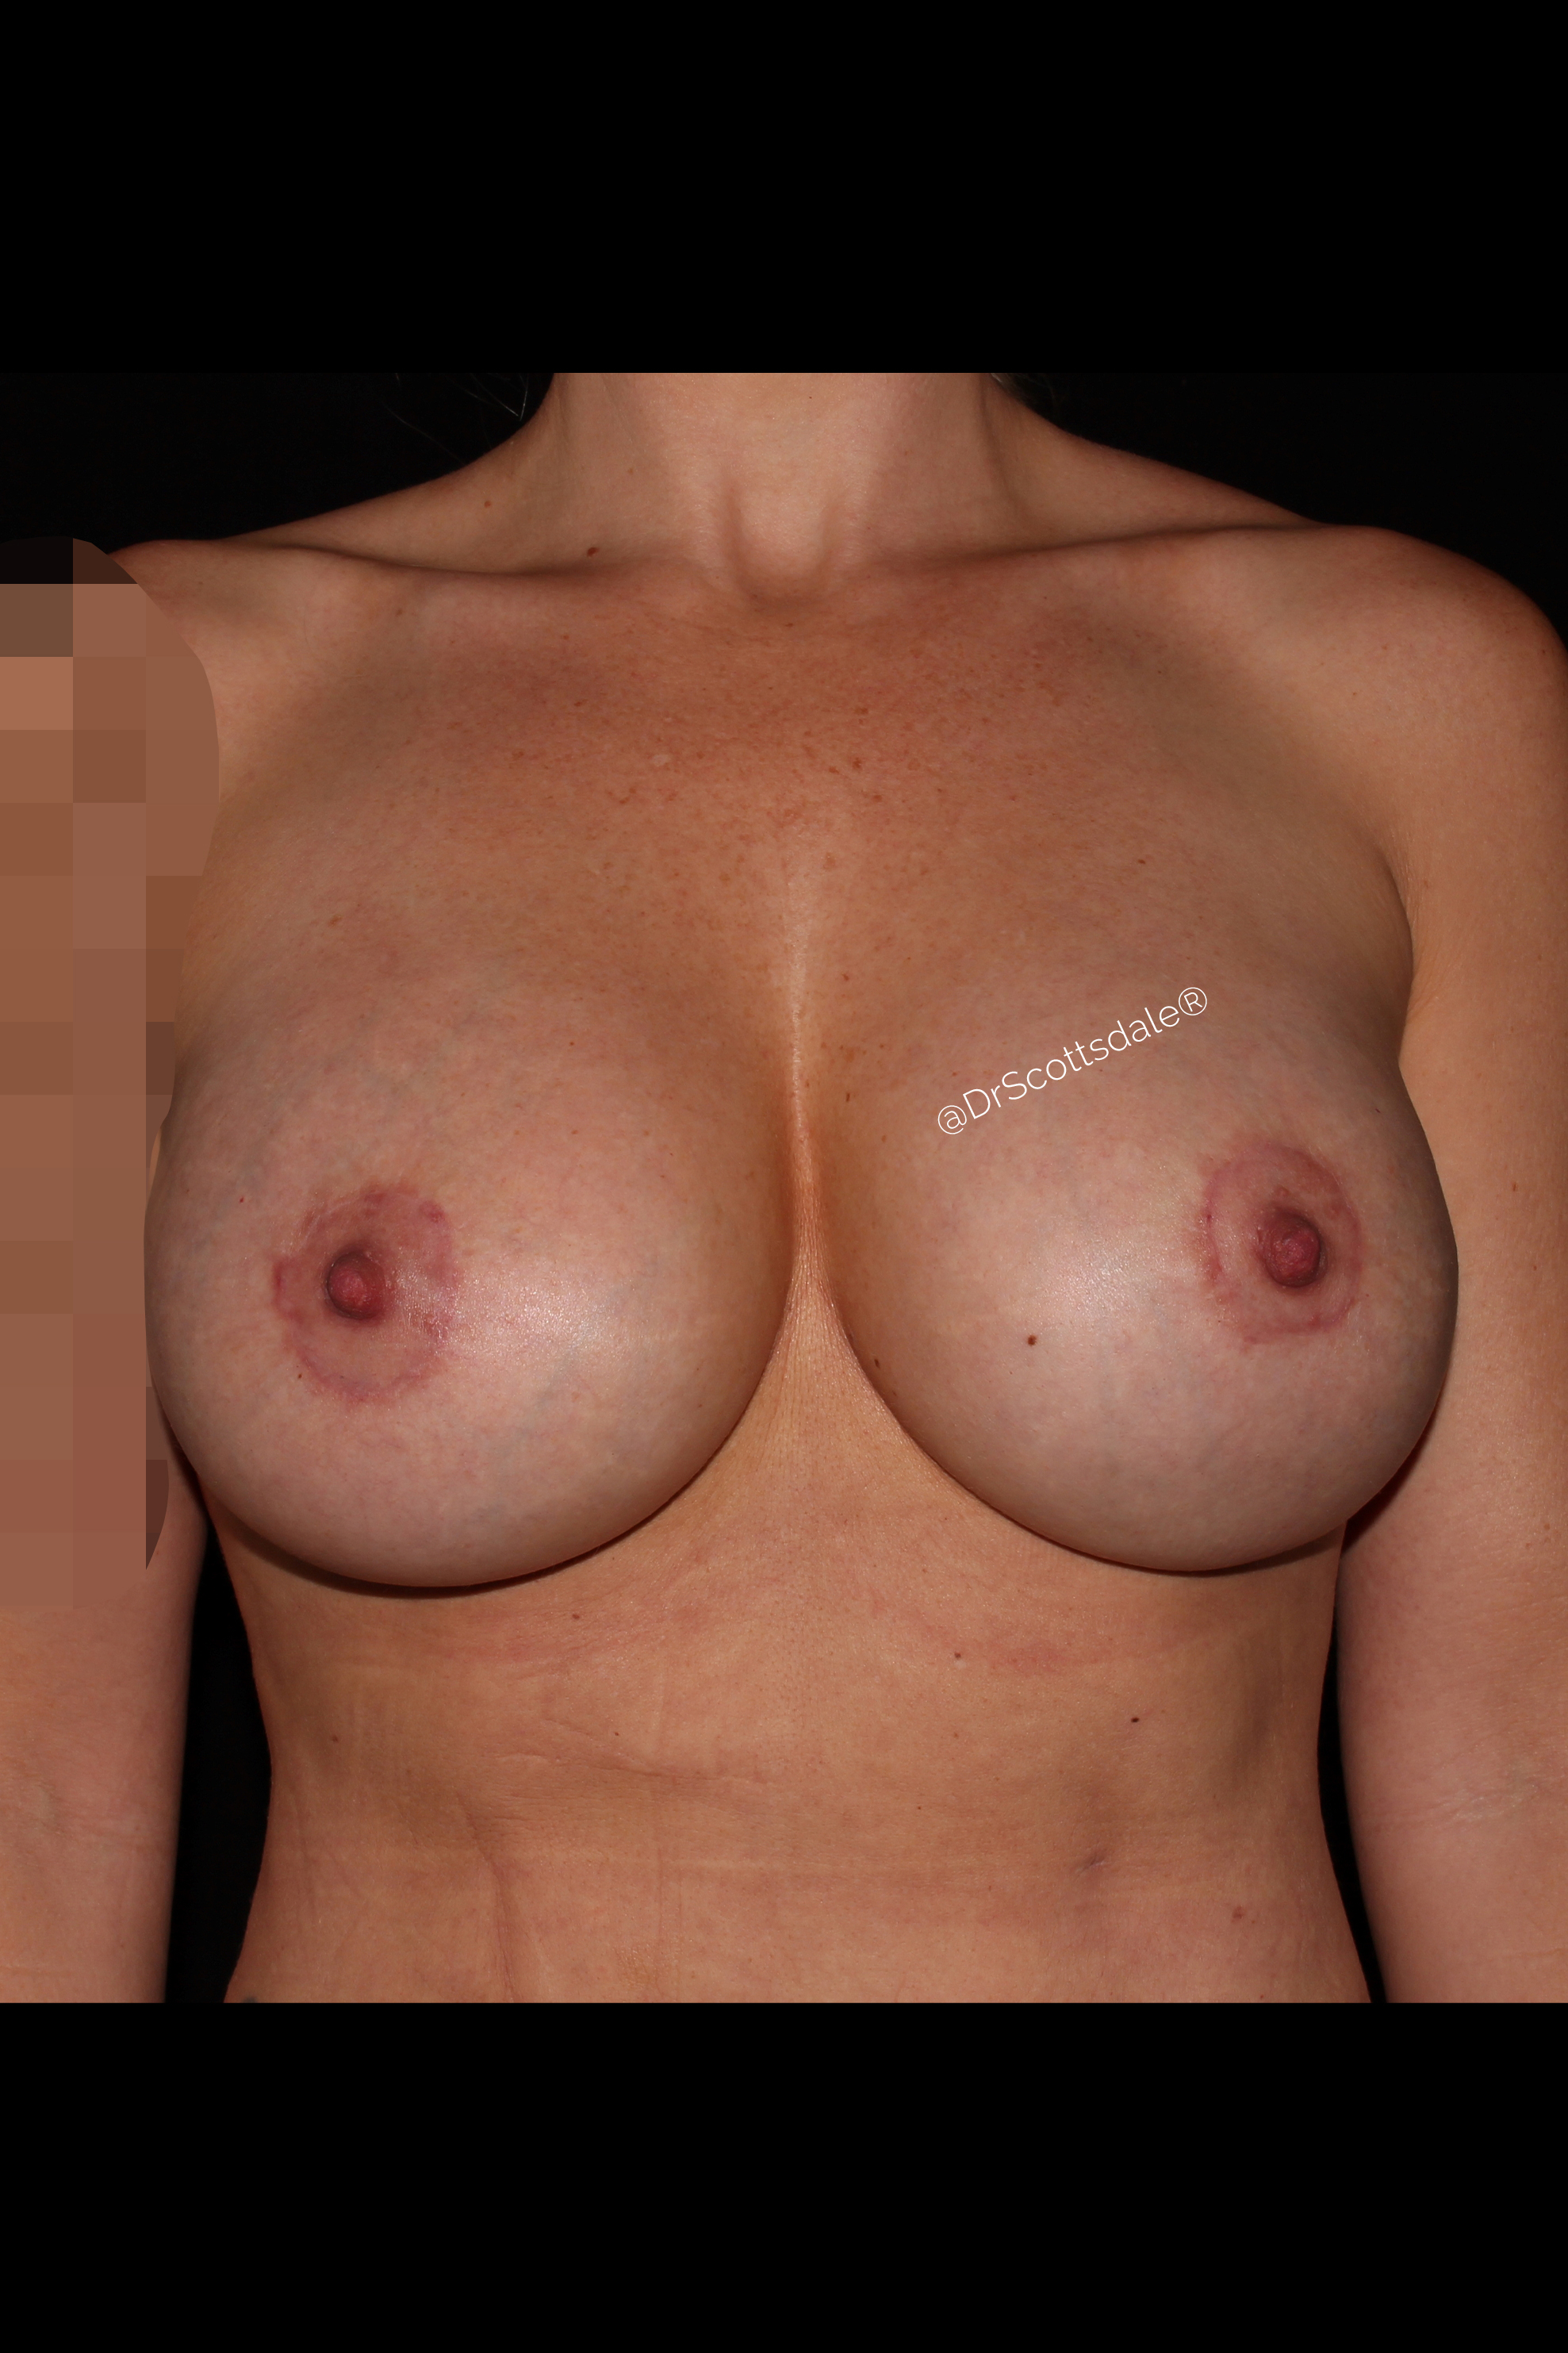 After Breast Revision - Implant exchange & fat transfer